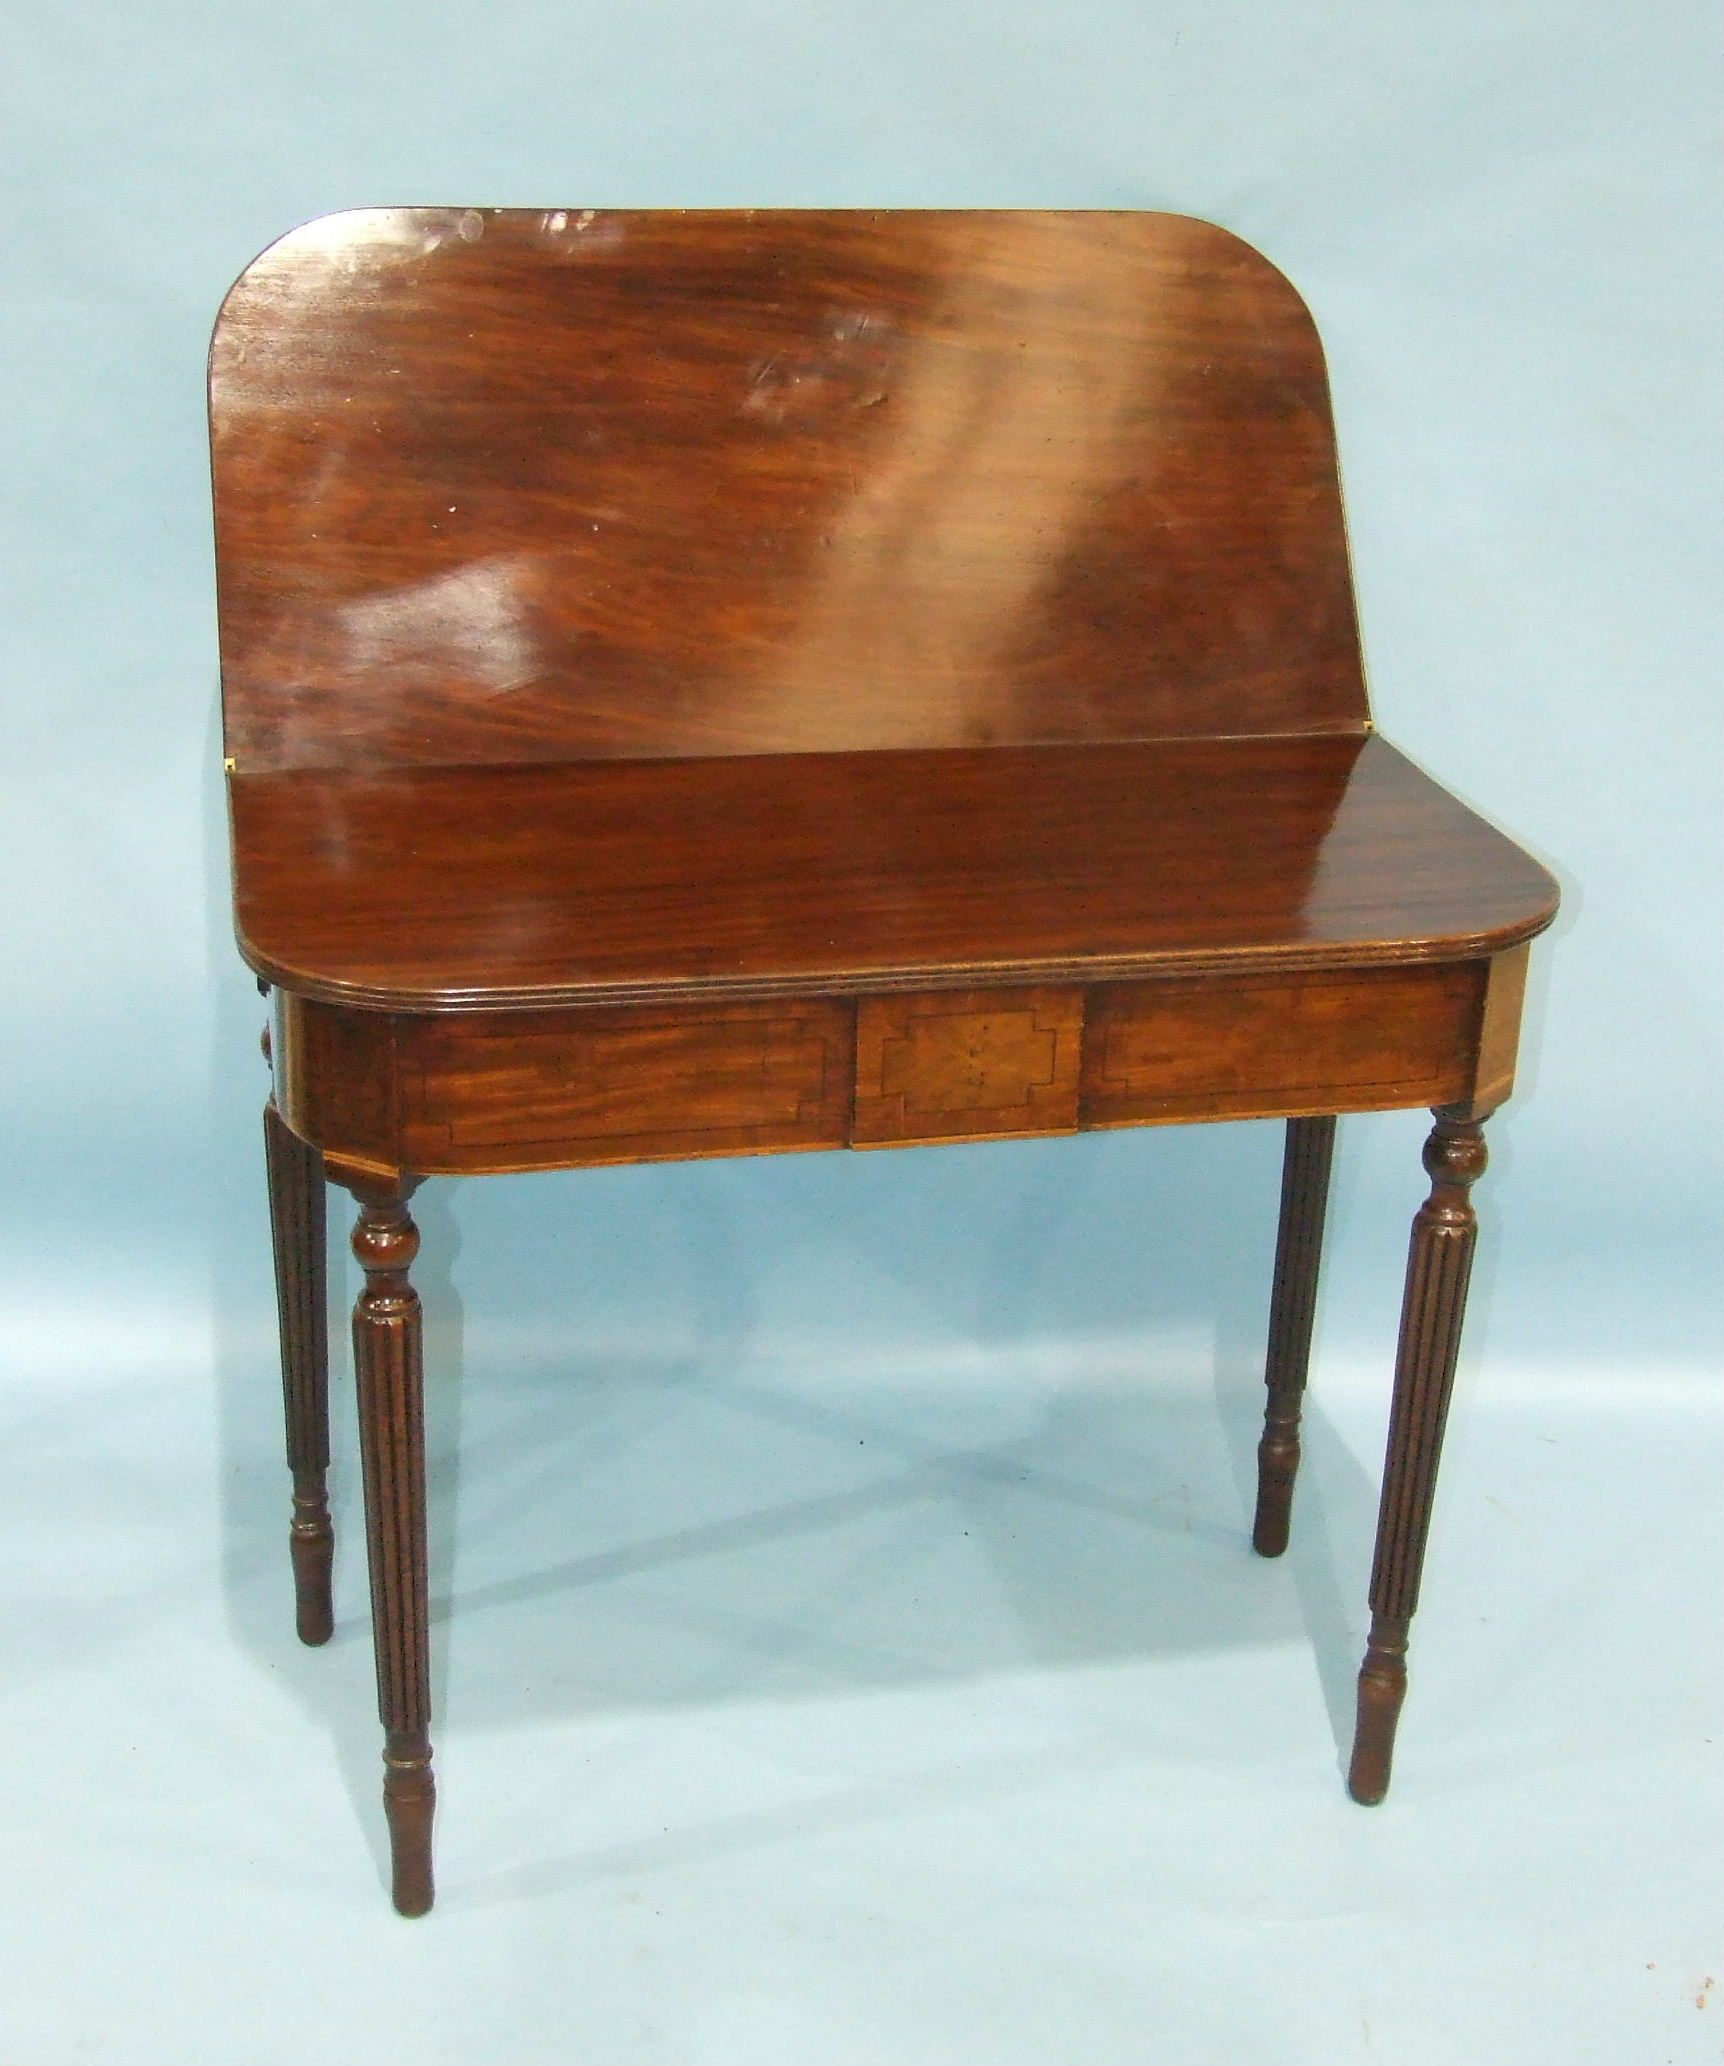 Lot 88 - A late-Georgian mahogany tea table, the rectangular reeded fold-over top with rounded corners, on